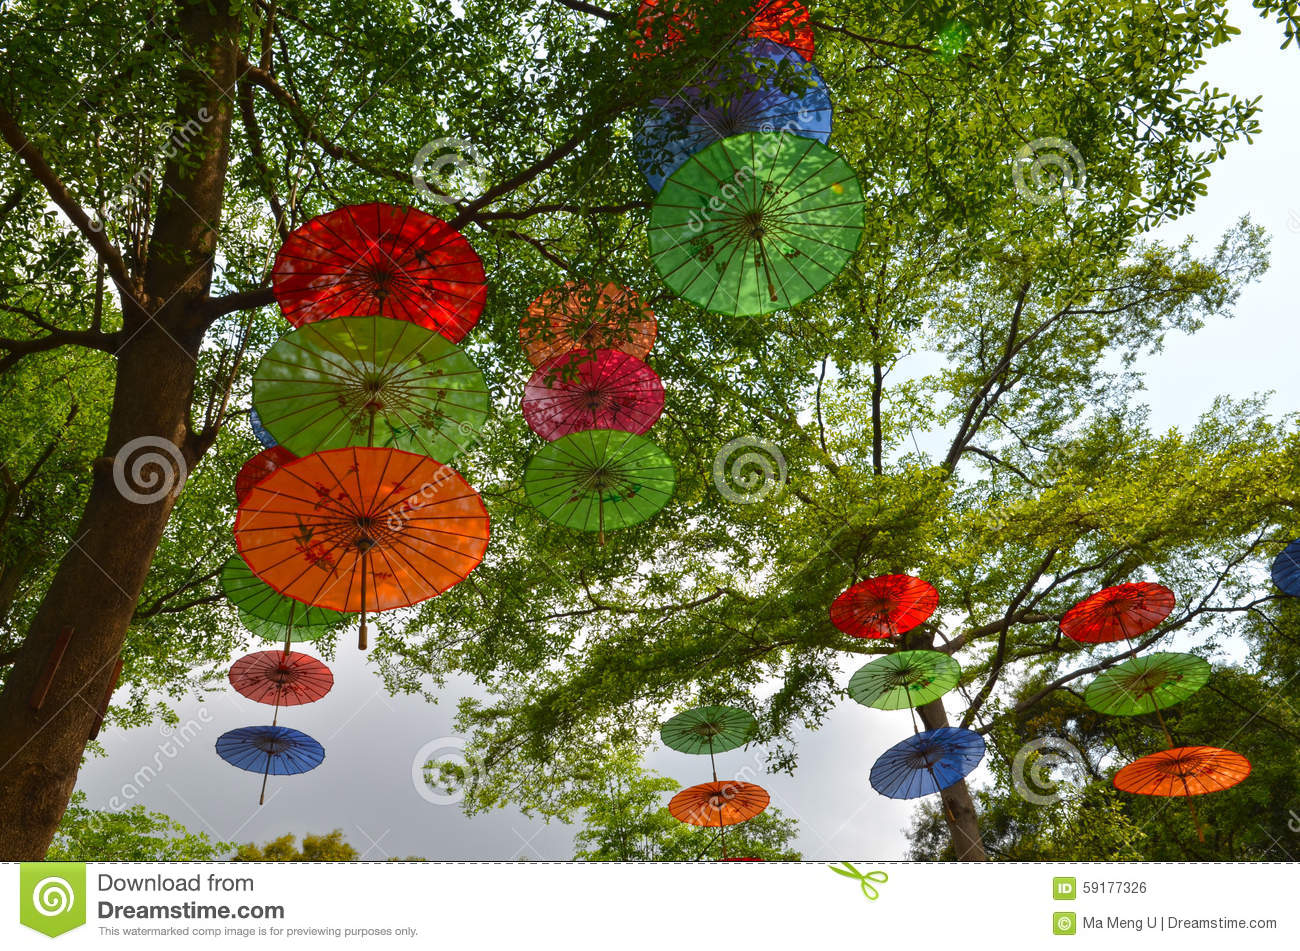 Colorful Umbrellas Hanging On Trees Stock Photo - Image of tree ...